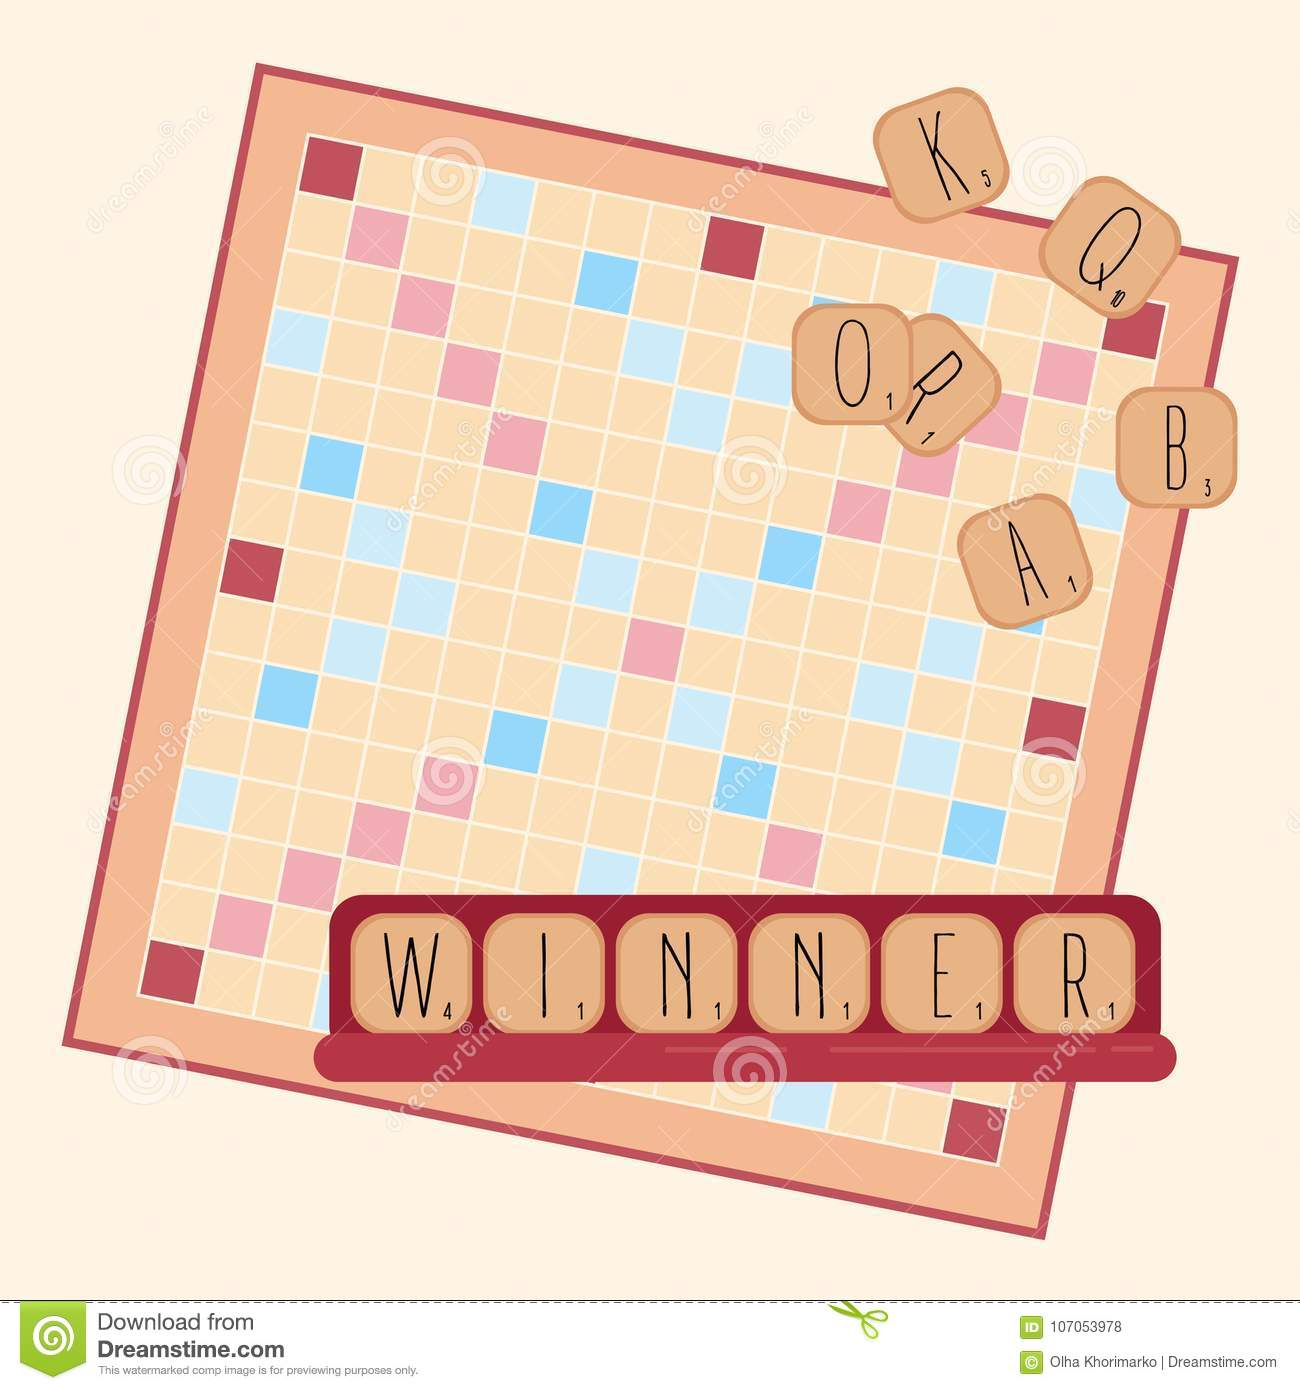 download Adult game board